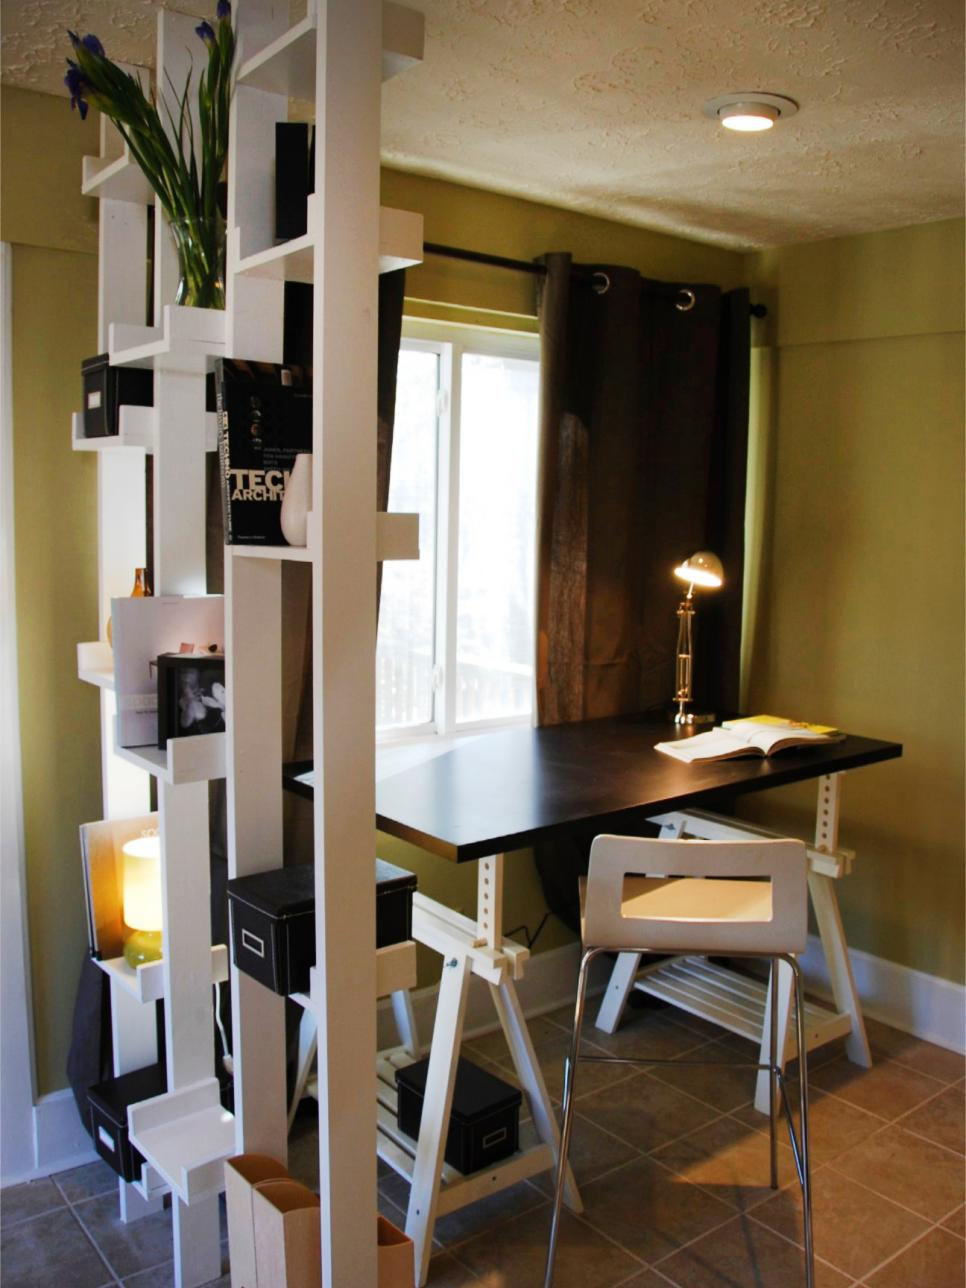 Small space home offices hgtv for Home office space design ideas